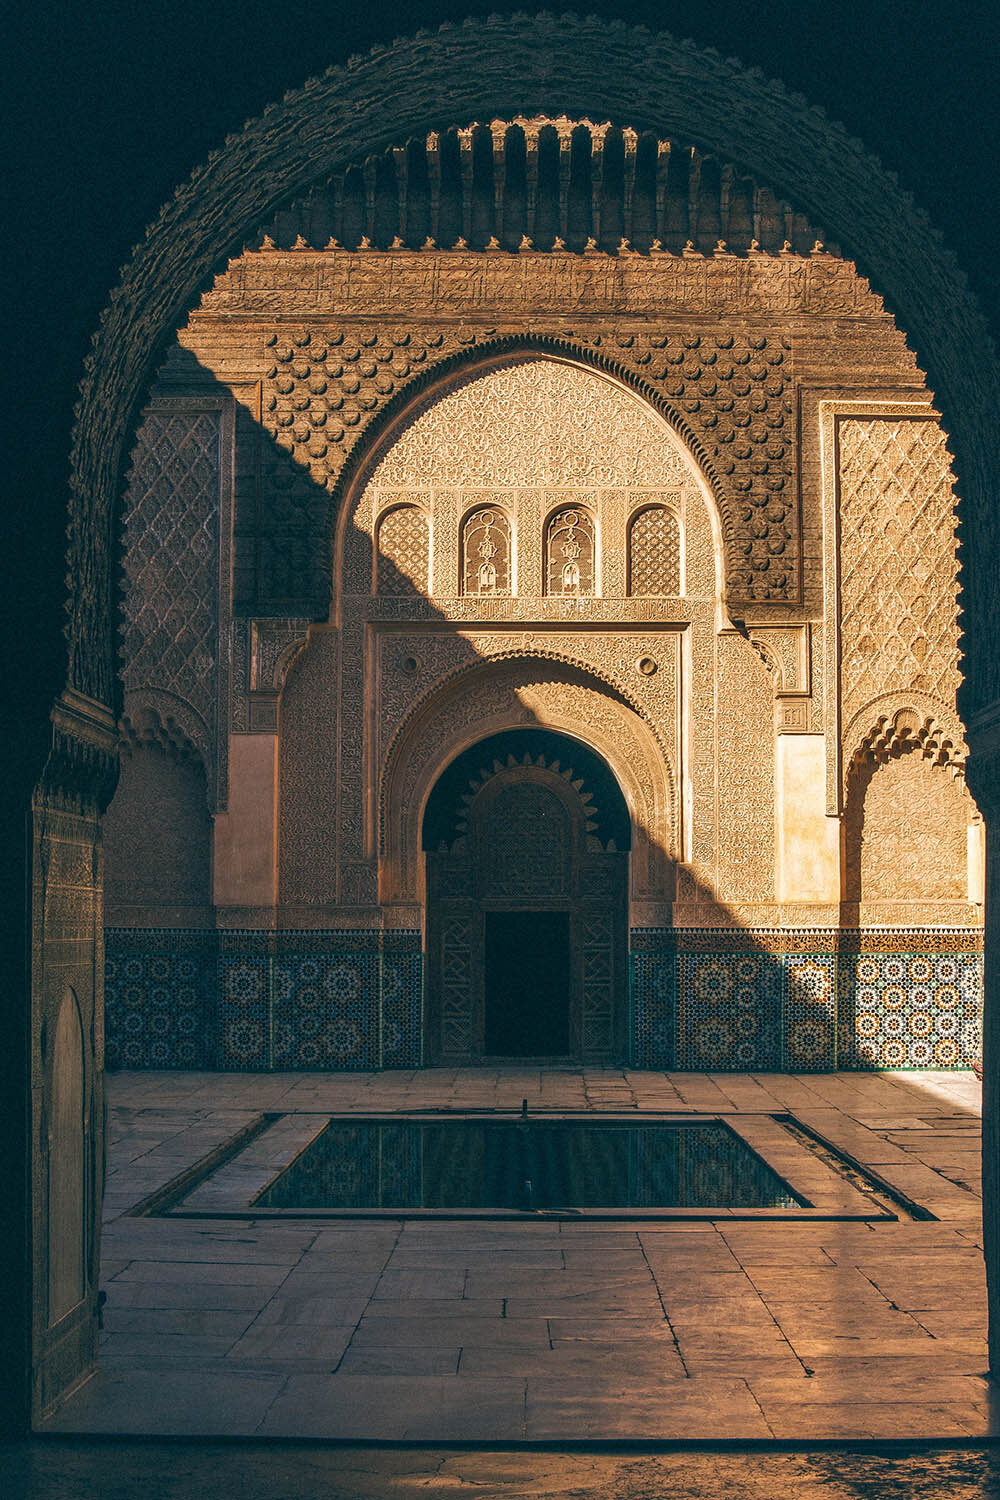 riad-zamzam-marrakech-spa-morocco-luxury-holiday-explore-medina-medersa-don-fontijn.jpg